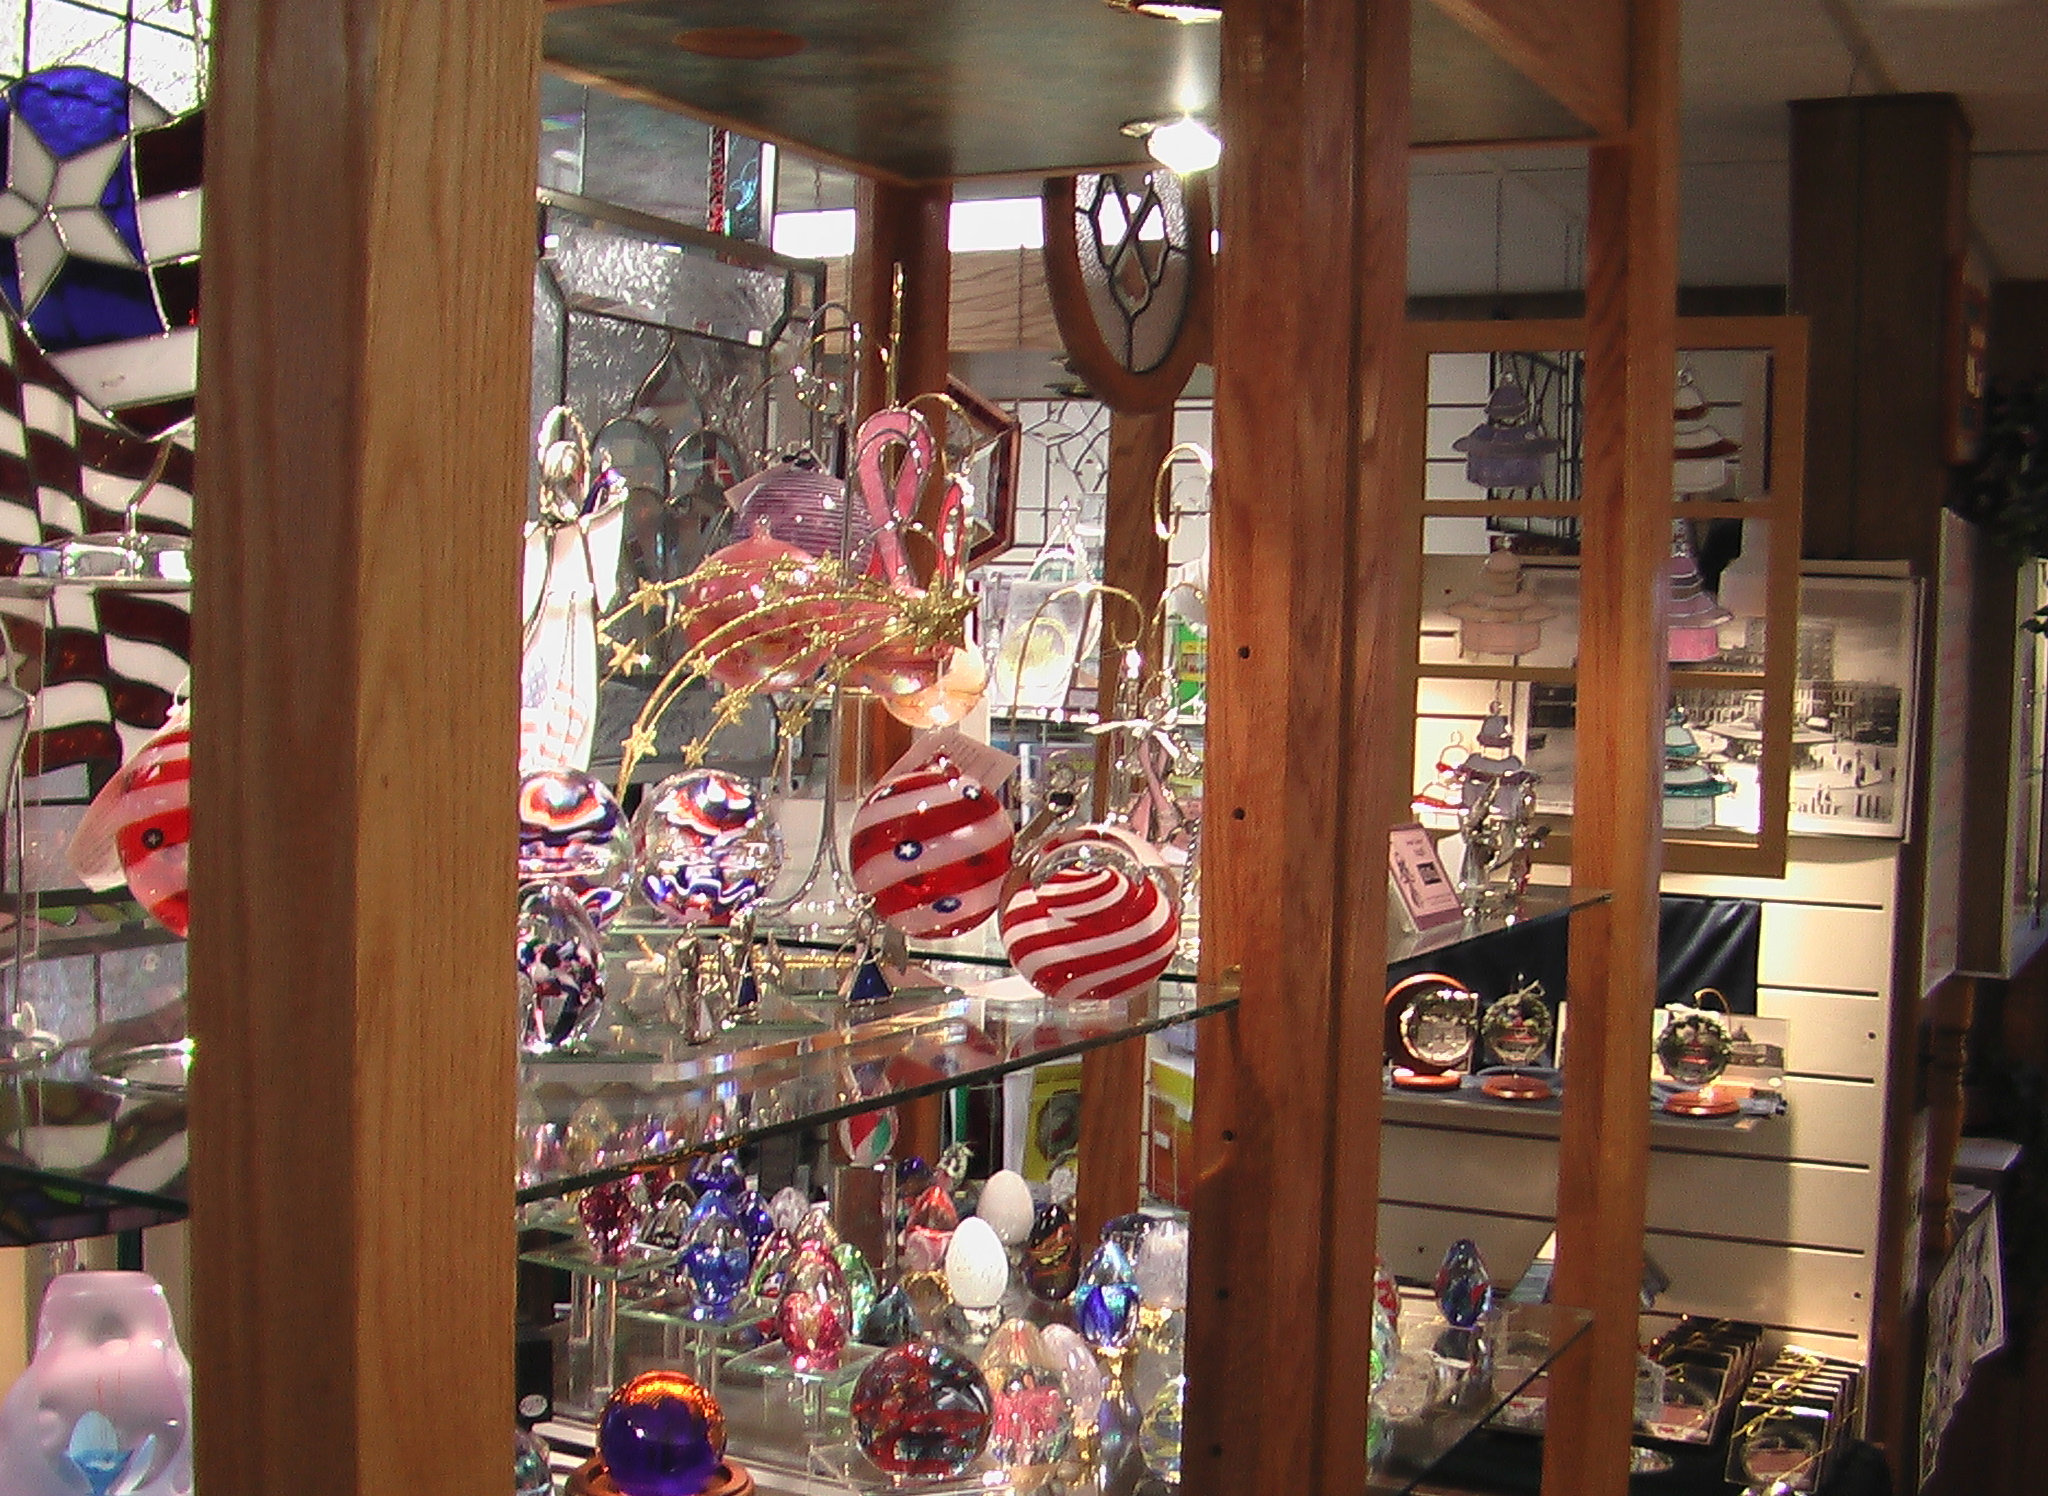 Blown glass ornaments and paperweights